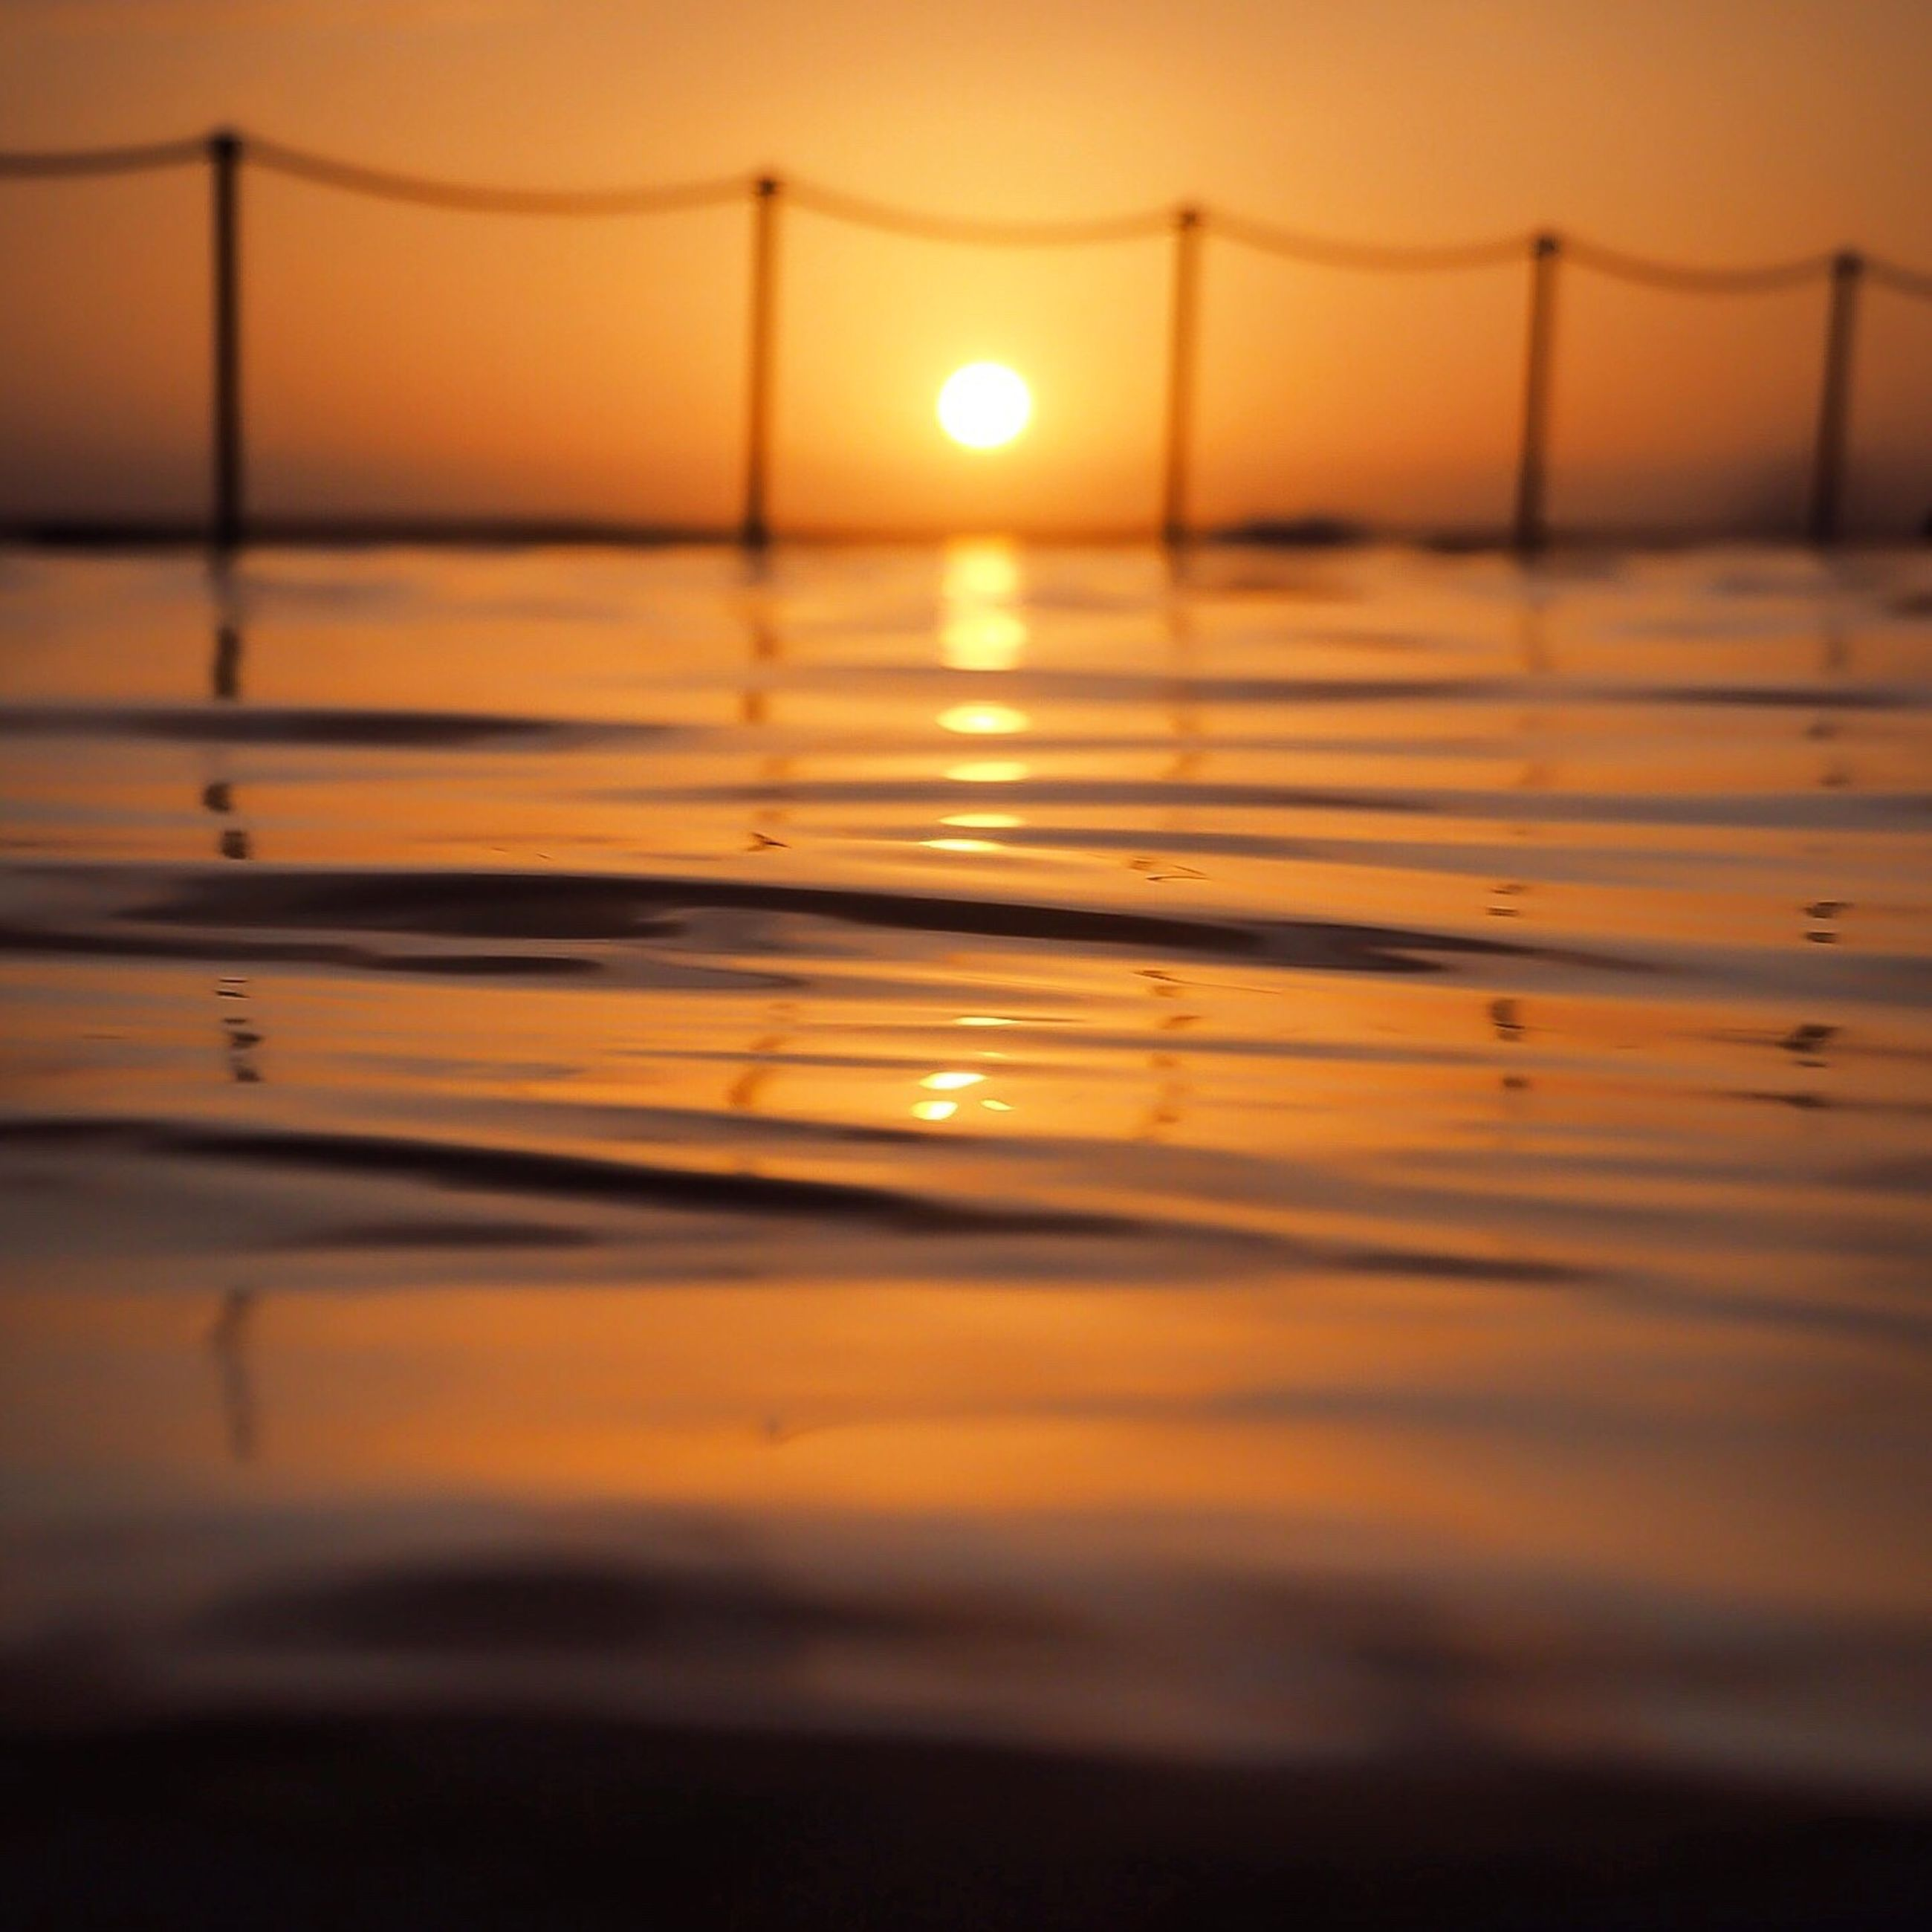 sun, sunset, scenics, selective focus, tranquil scene, tranquility, idyllic, orange color, beauty in nature, surface level, sea, sky, majestic, nature, water, outdoors, shore, atmospheric mood, vibrant color, seascape, dramatic sky, water surface